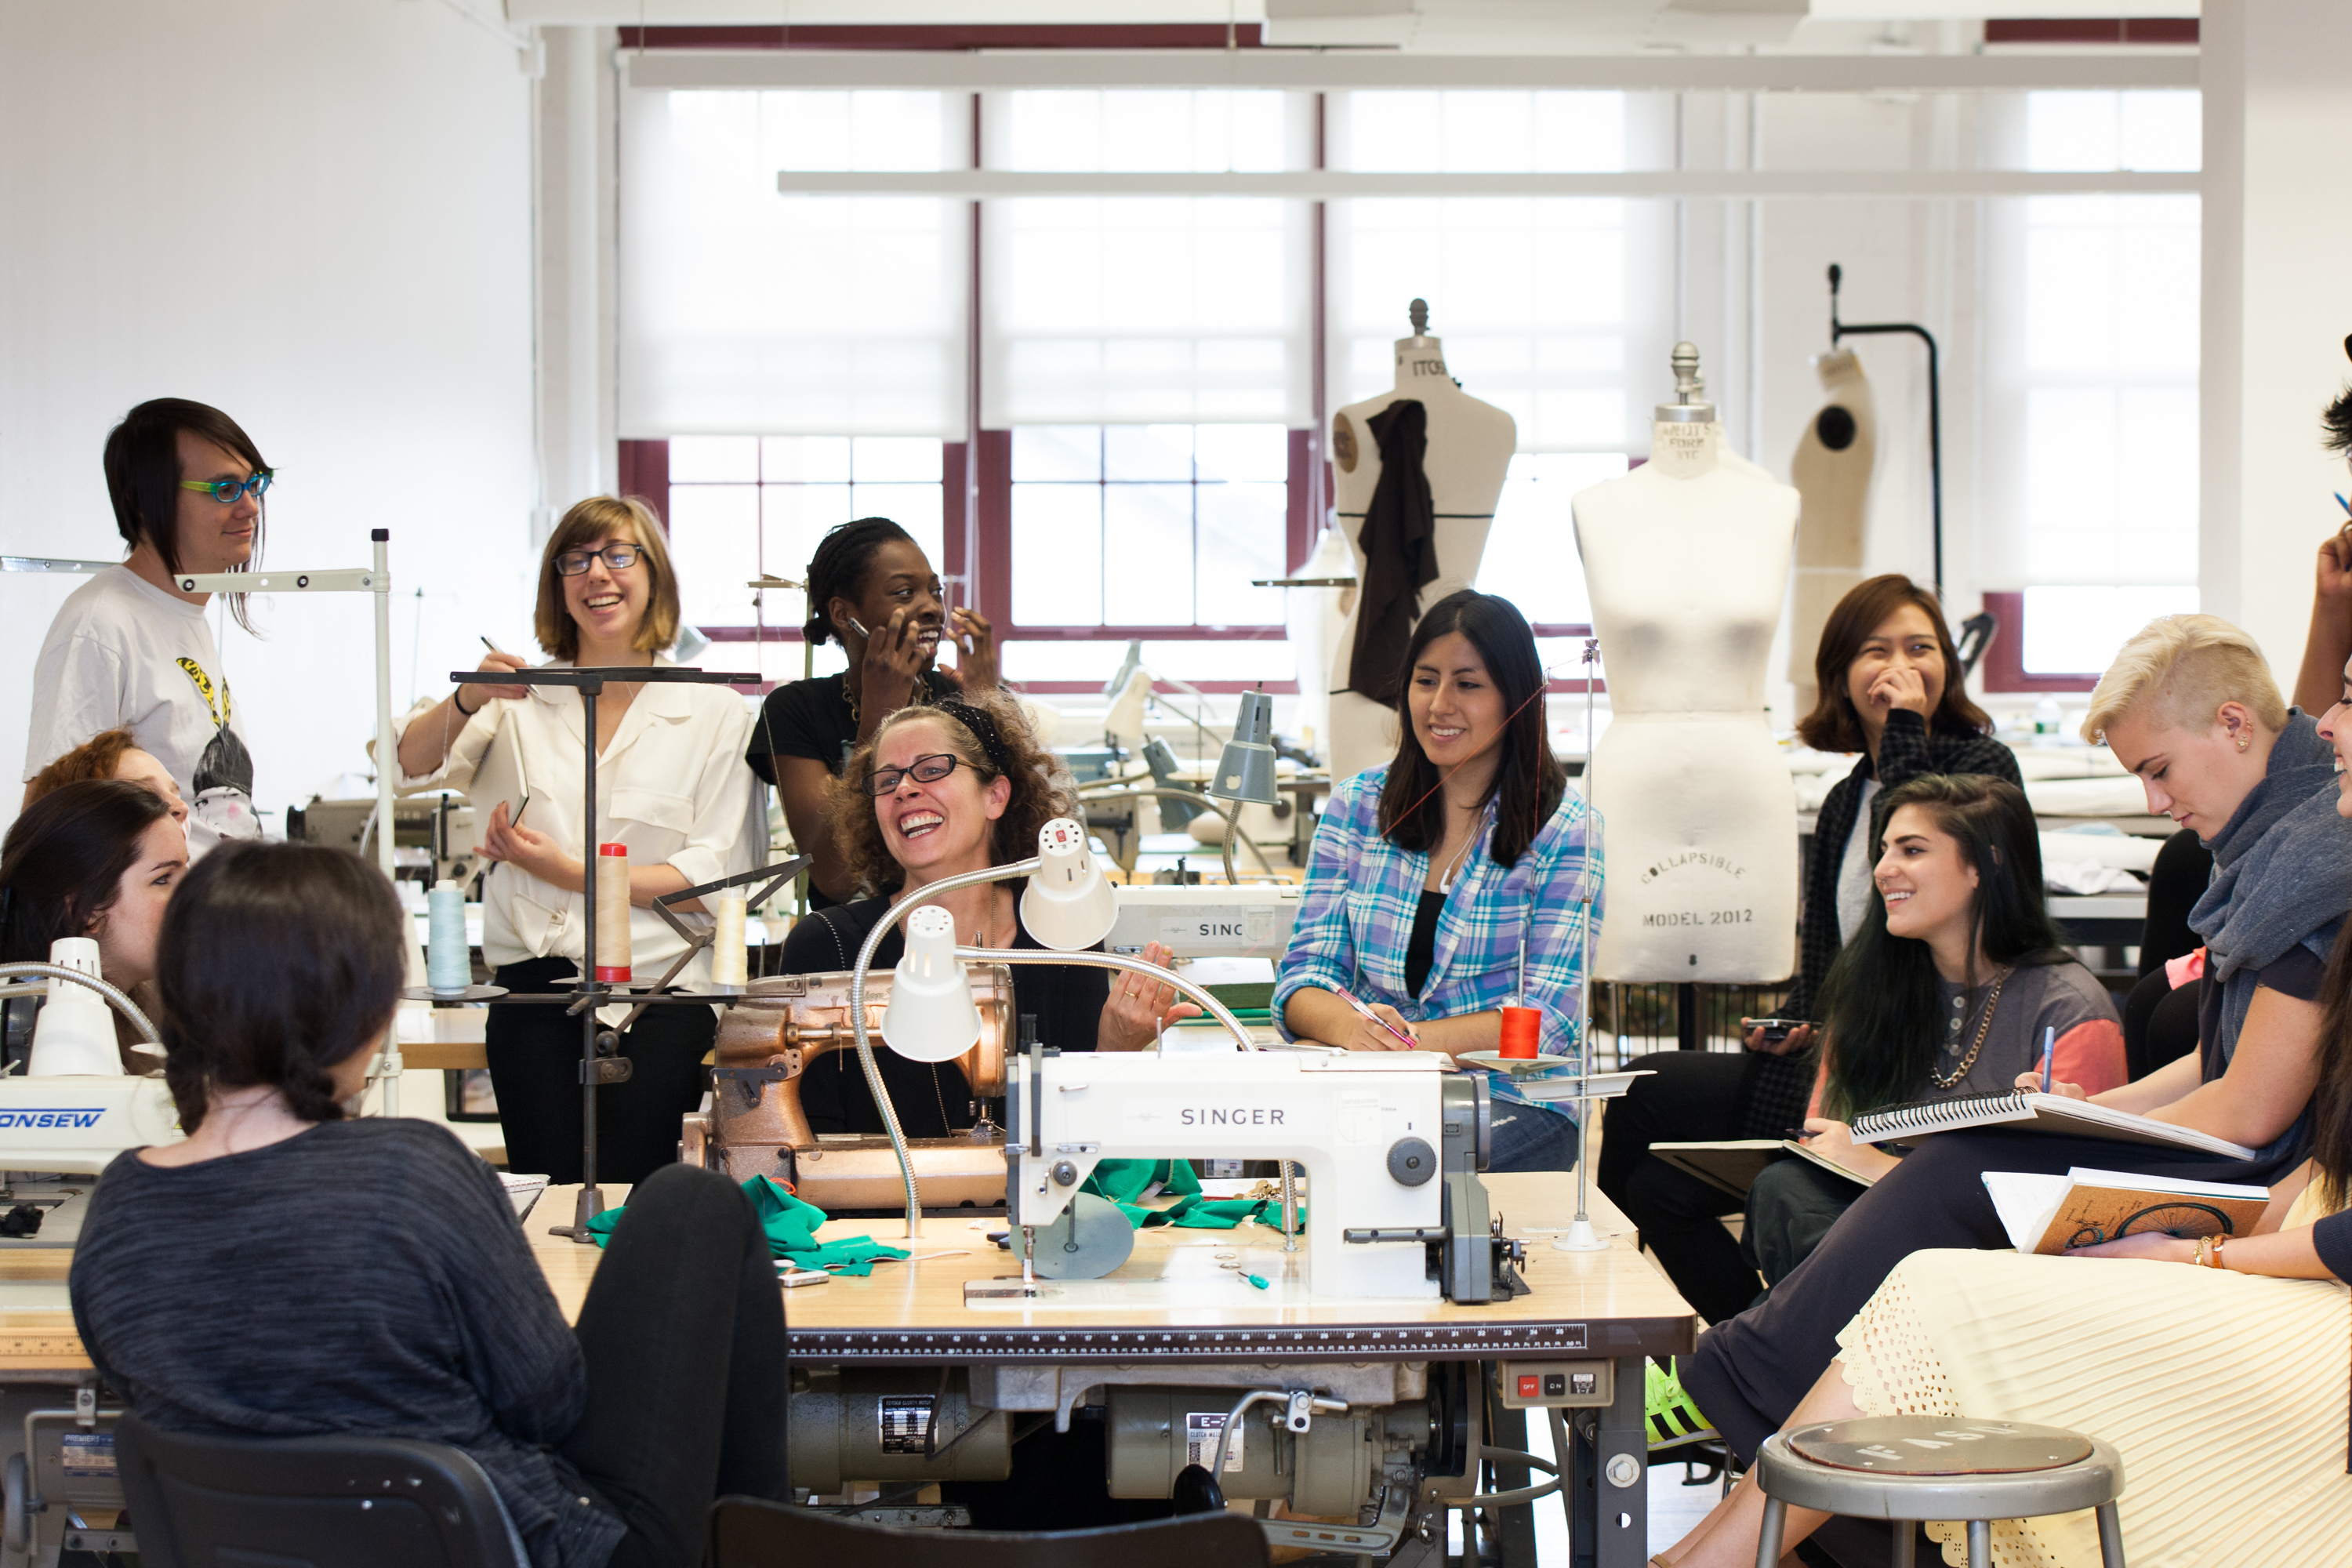 Group photograph of a class having a discussion in a fashion studio